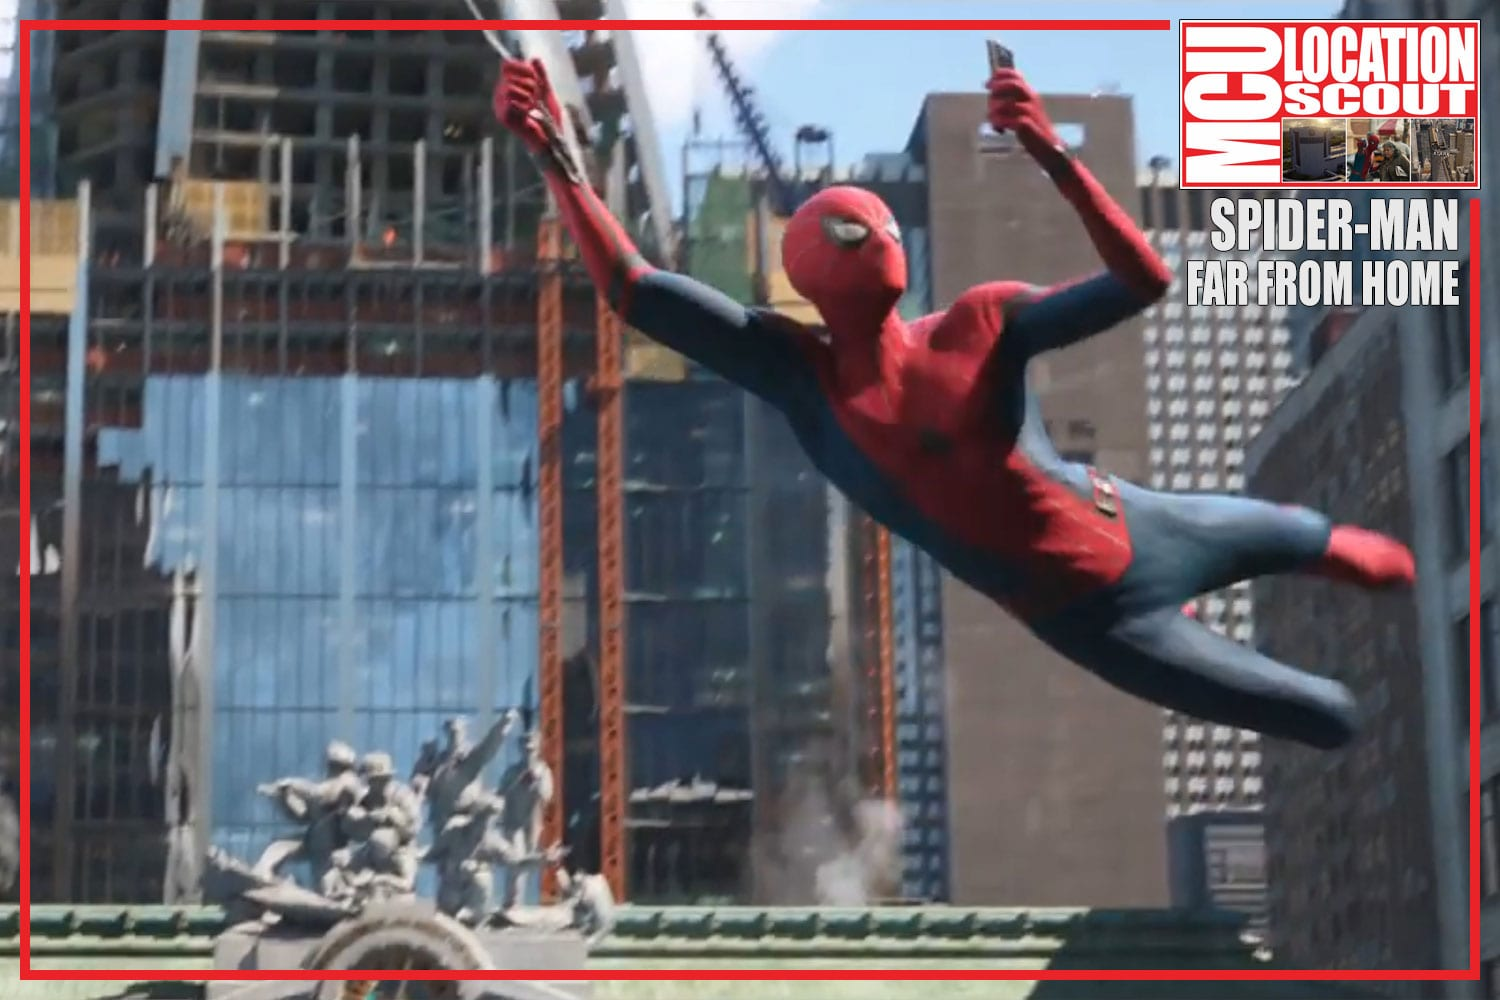 MCU: Location Scout   Spider-Man: Far From Home Trailer